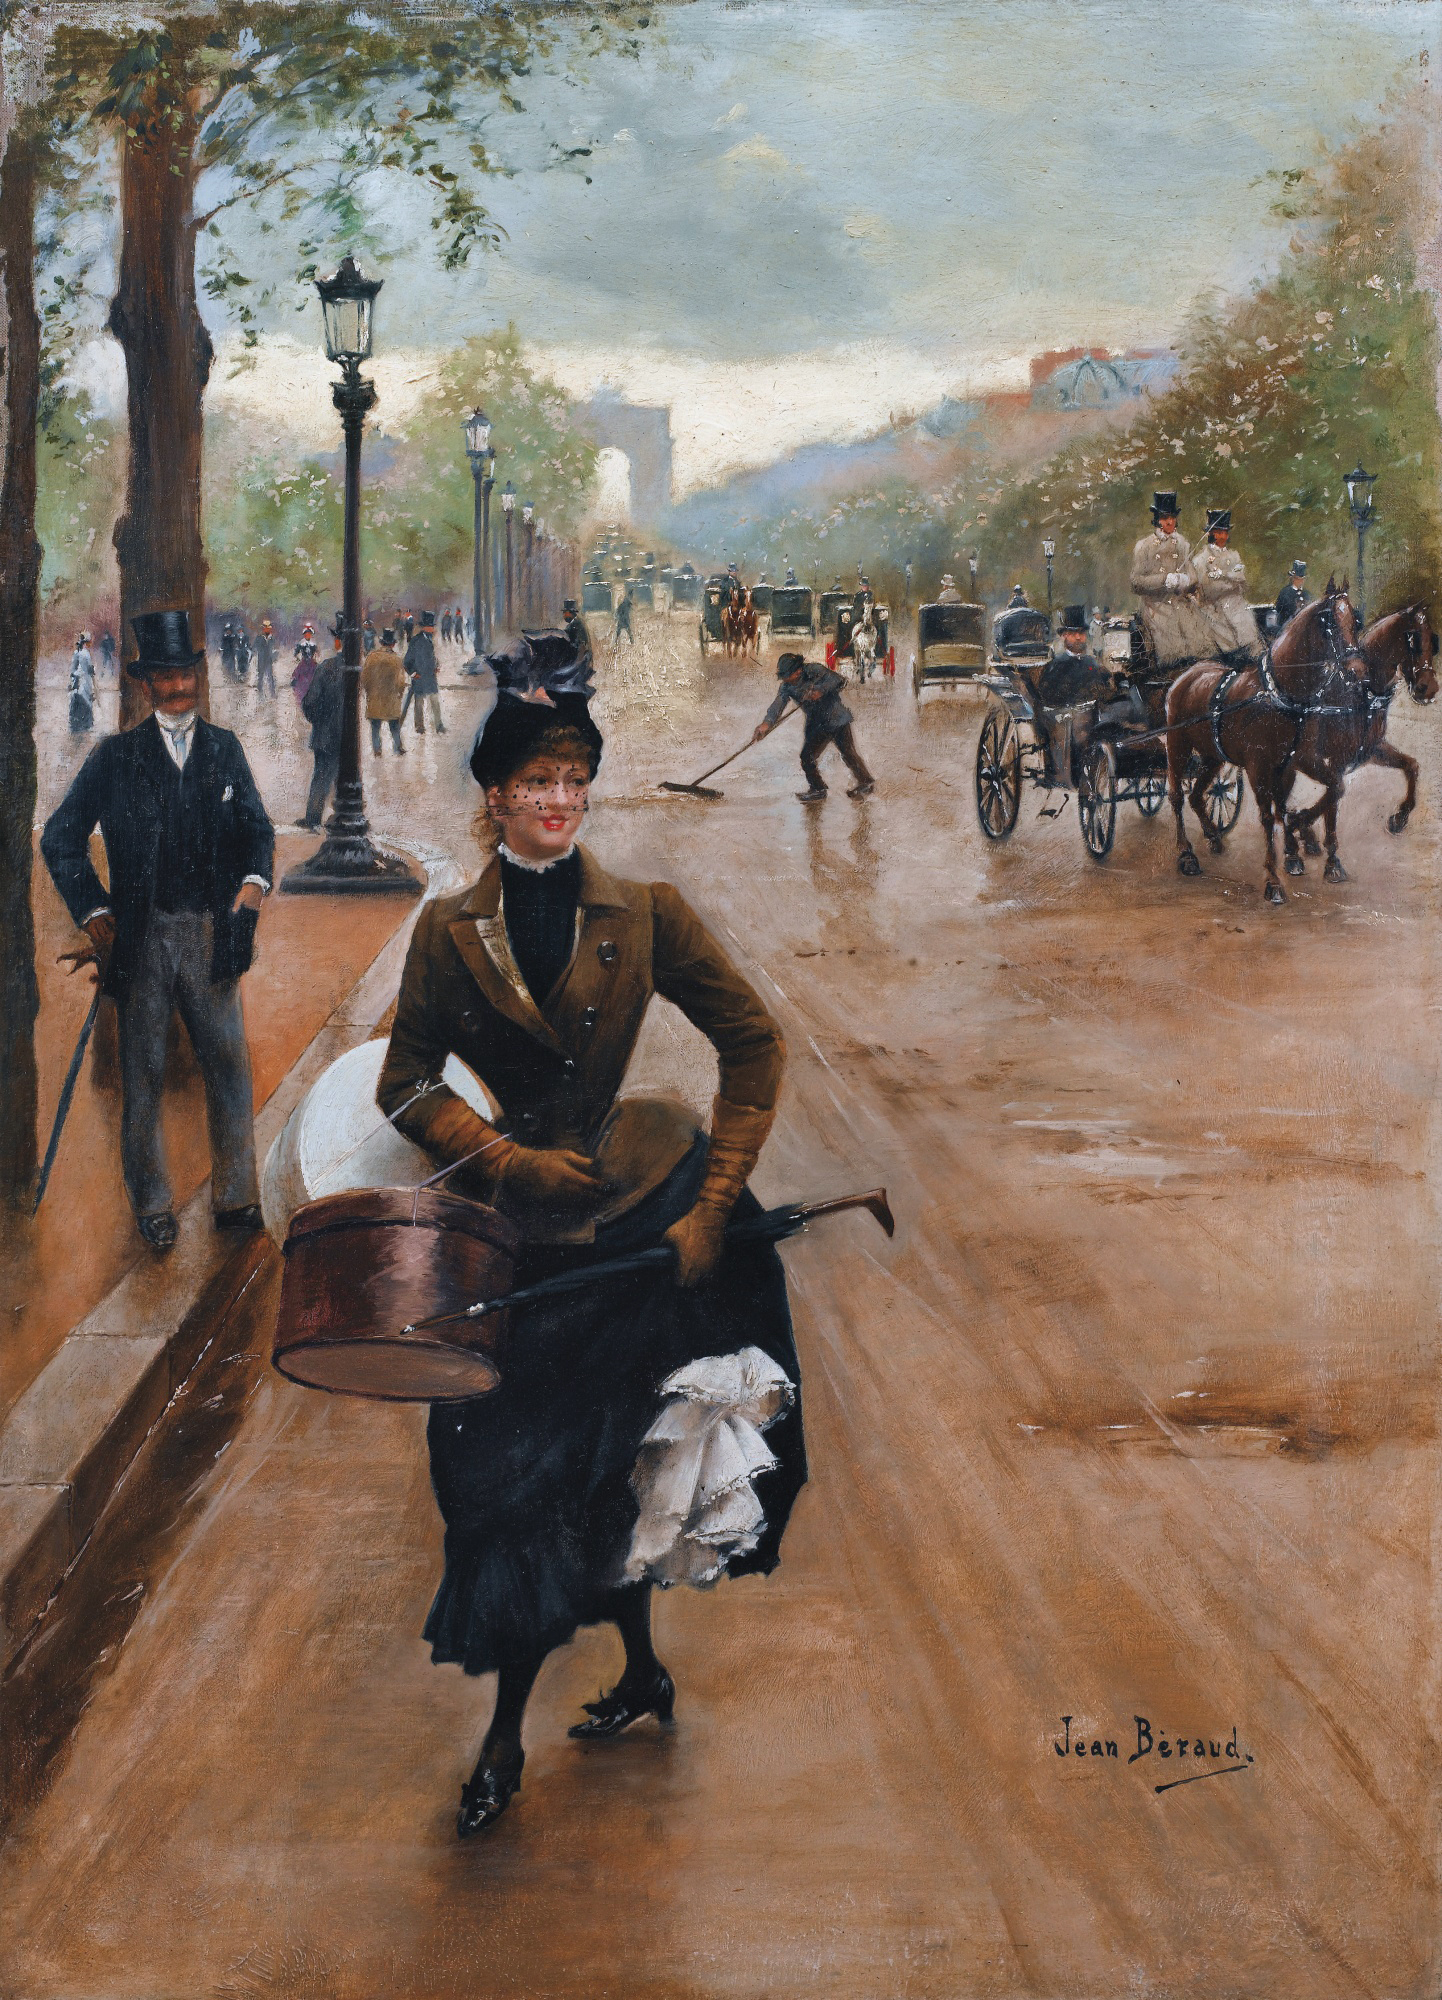 The Milliner on the Champs-Elysées, Jean Béraud, date unknown